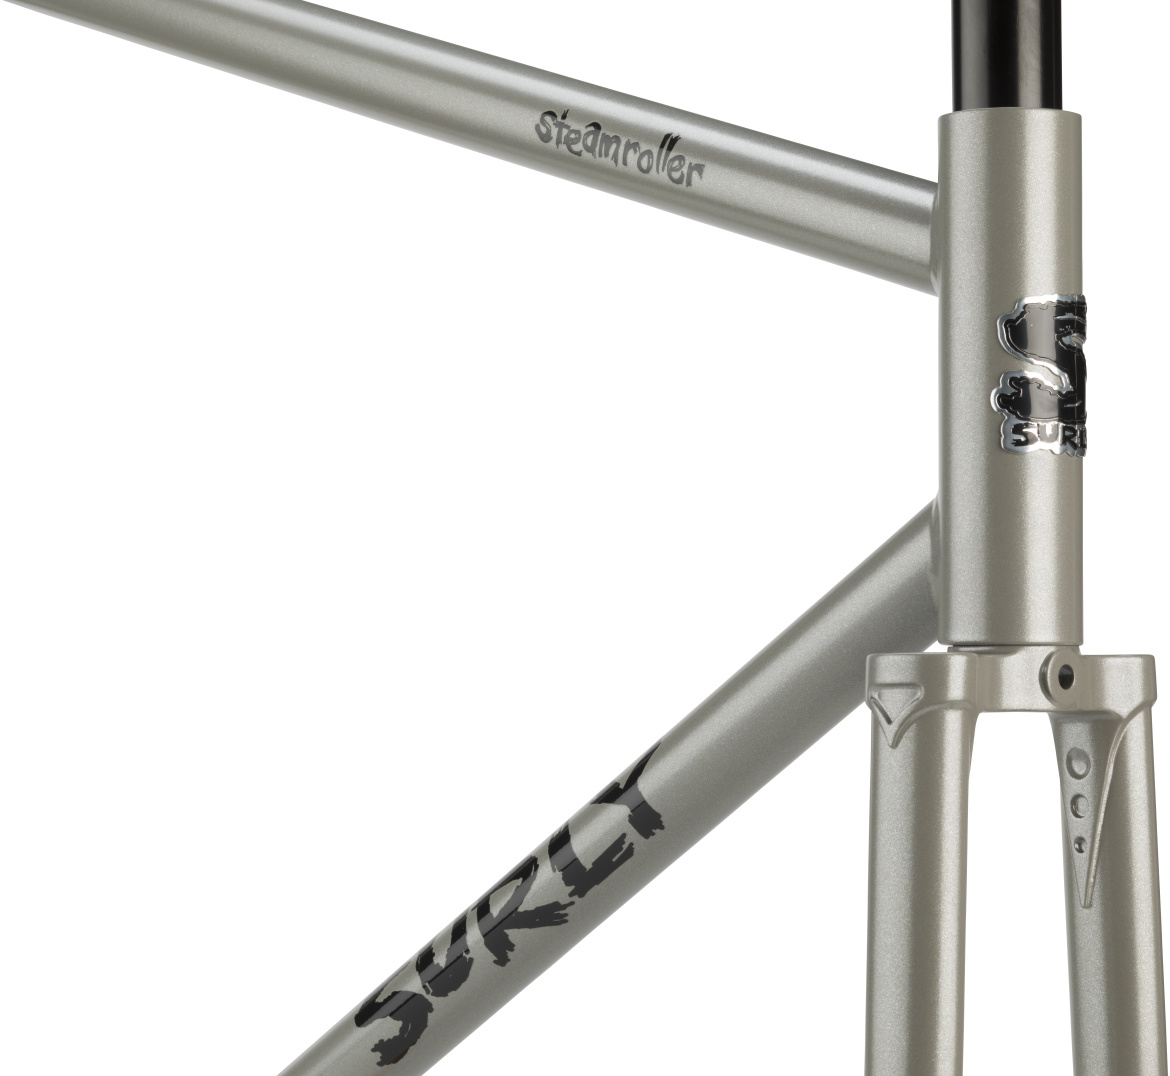 Partial front view of a Surly Steamroller bike frame and fork - Ministry Gray color